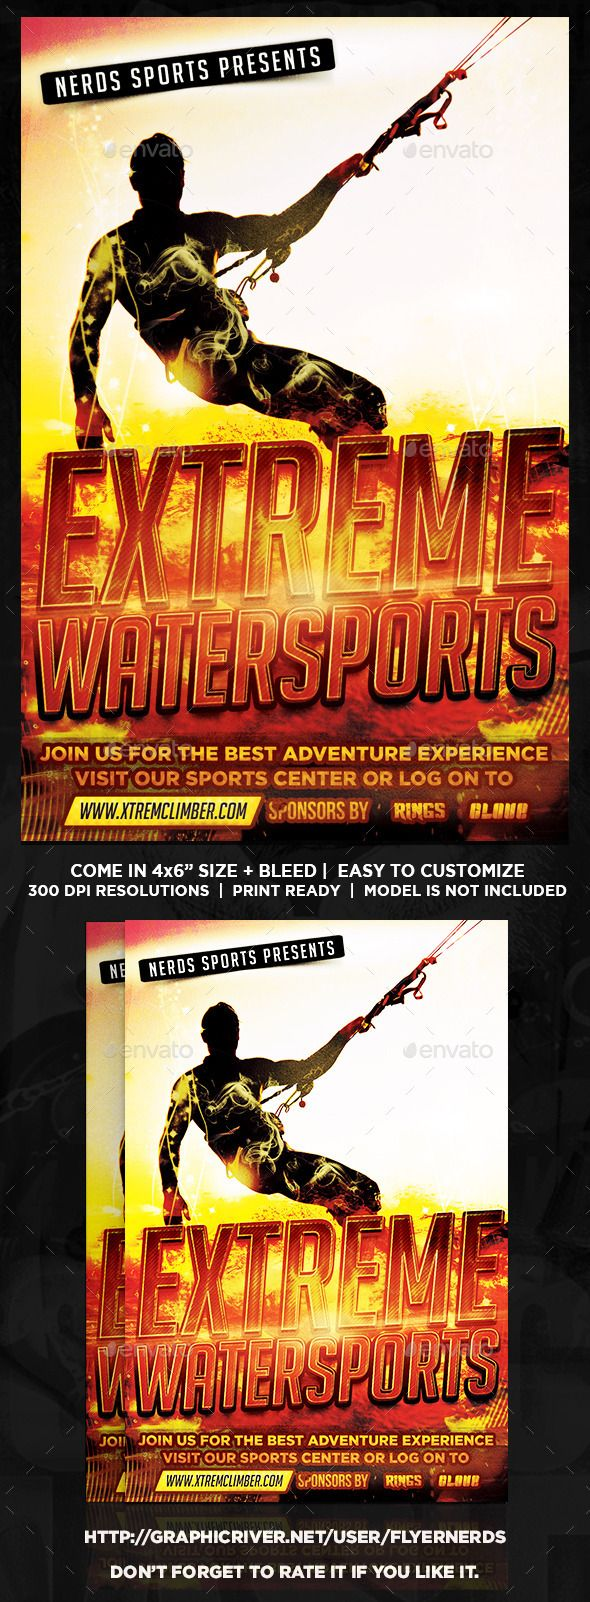 Extreme Watersports Flyer by flyernerds Extreme Watersports Flyer Description :46 with bleedPrint Ready ( CMYK, 300DPI ) Easy to edit and fully customizable Model Image d